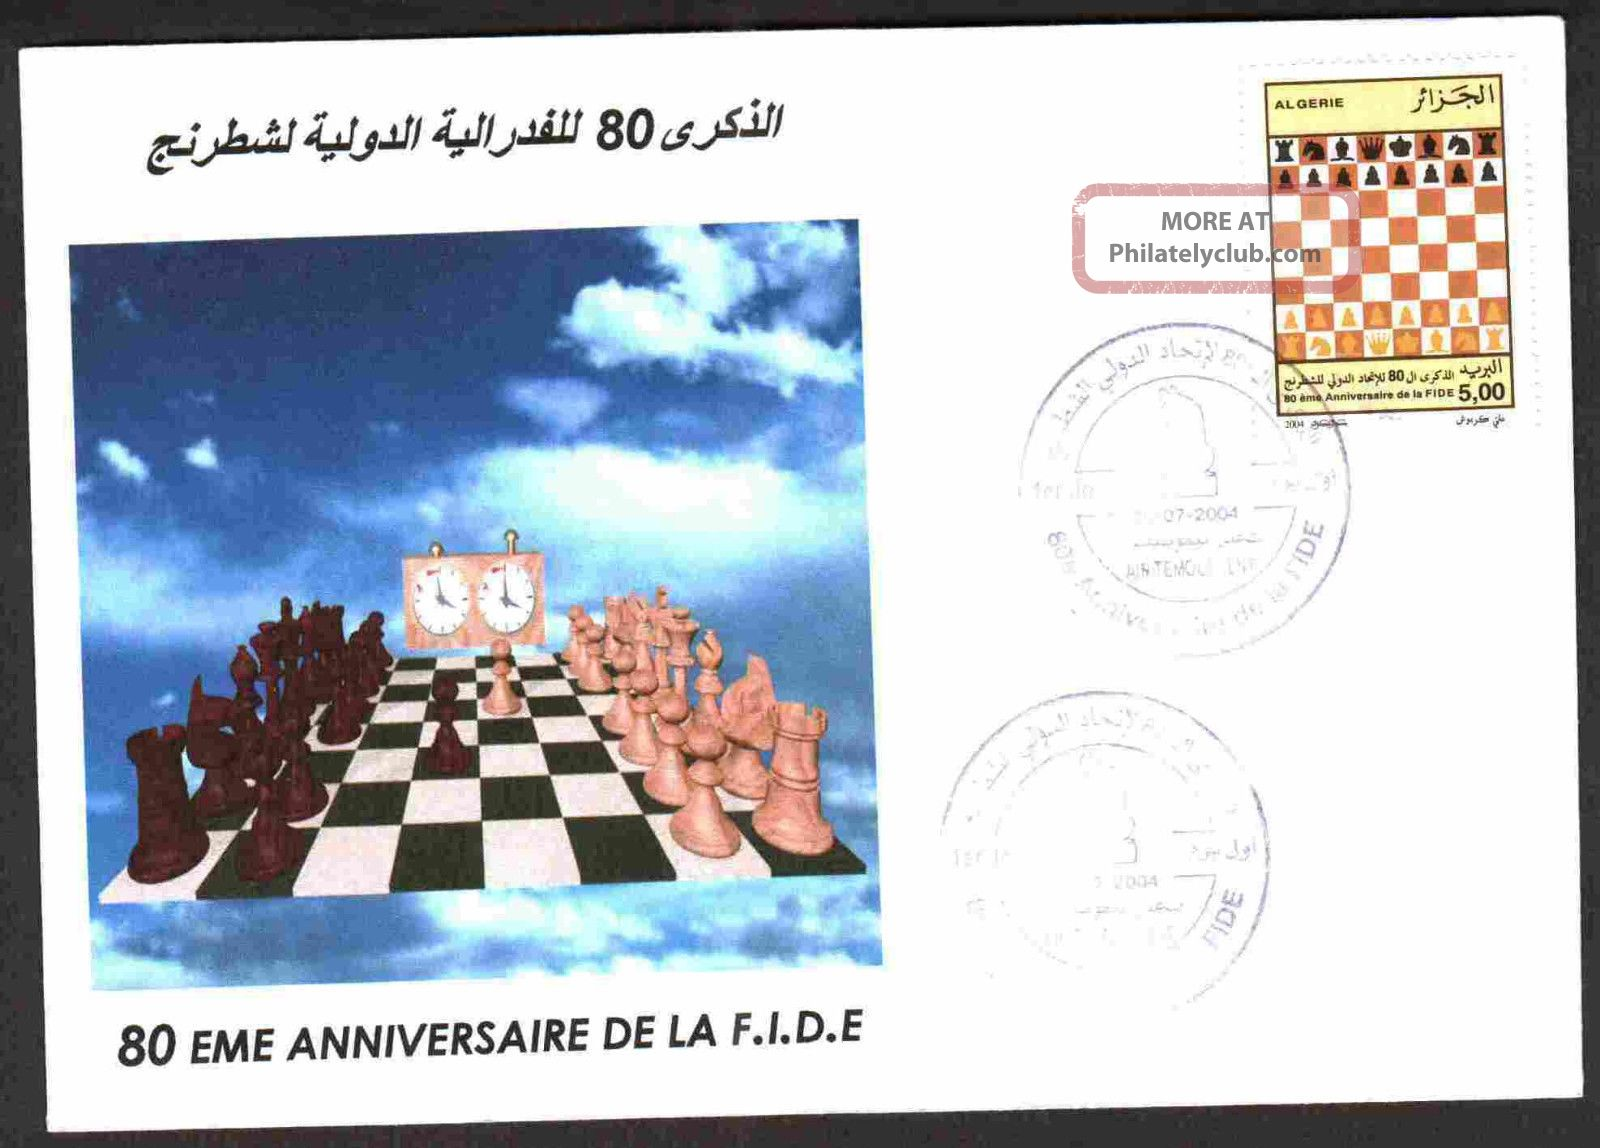 Algeria 2004 - Chess,  Scott 1310 - Fdc With Topical Cancel (ain Tmouchent) Sports photo